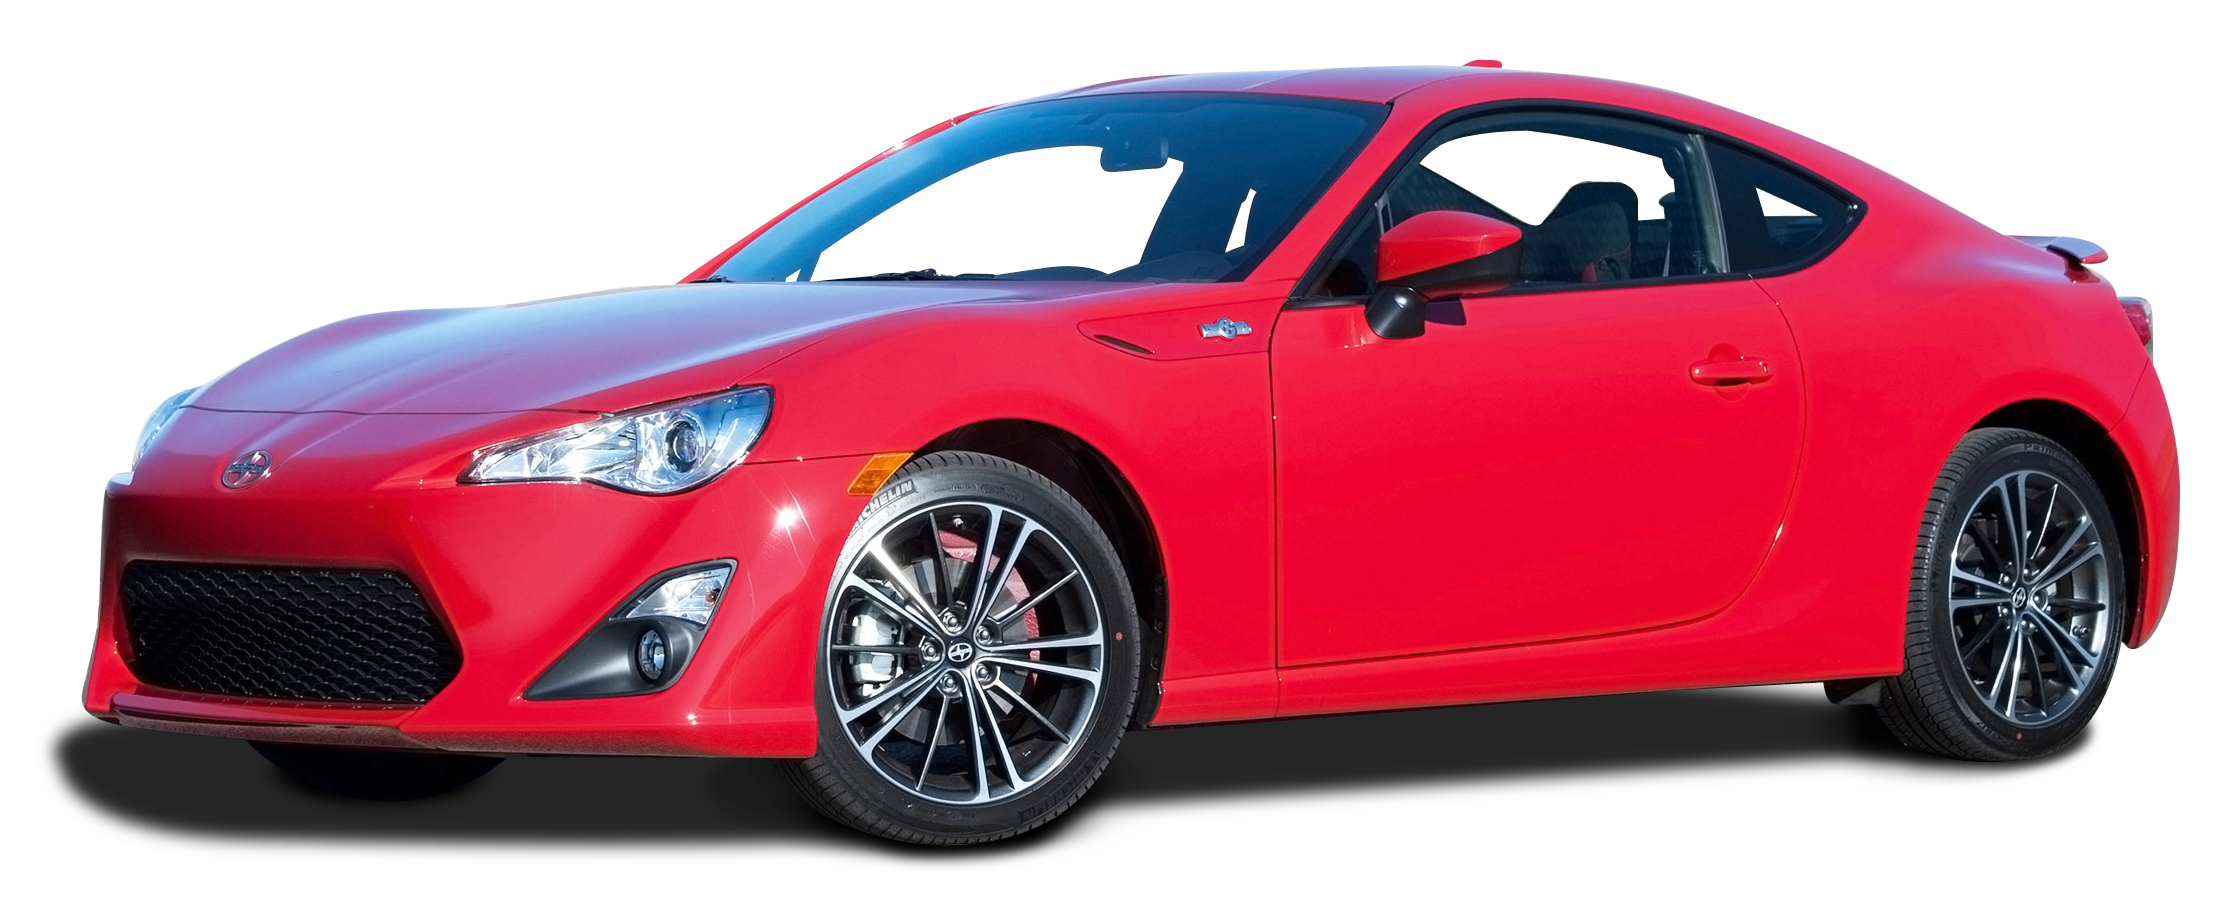 Red Scion FR S Car PNG Image.